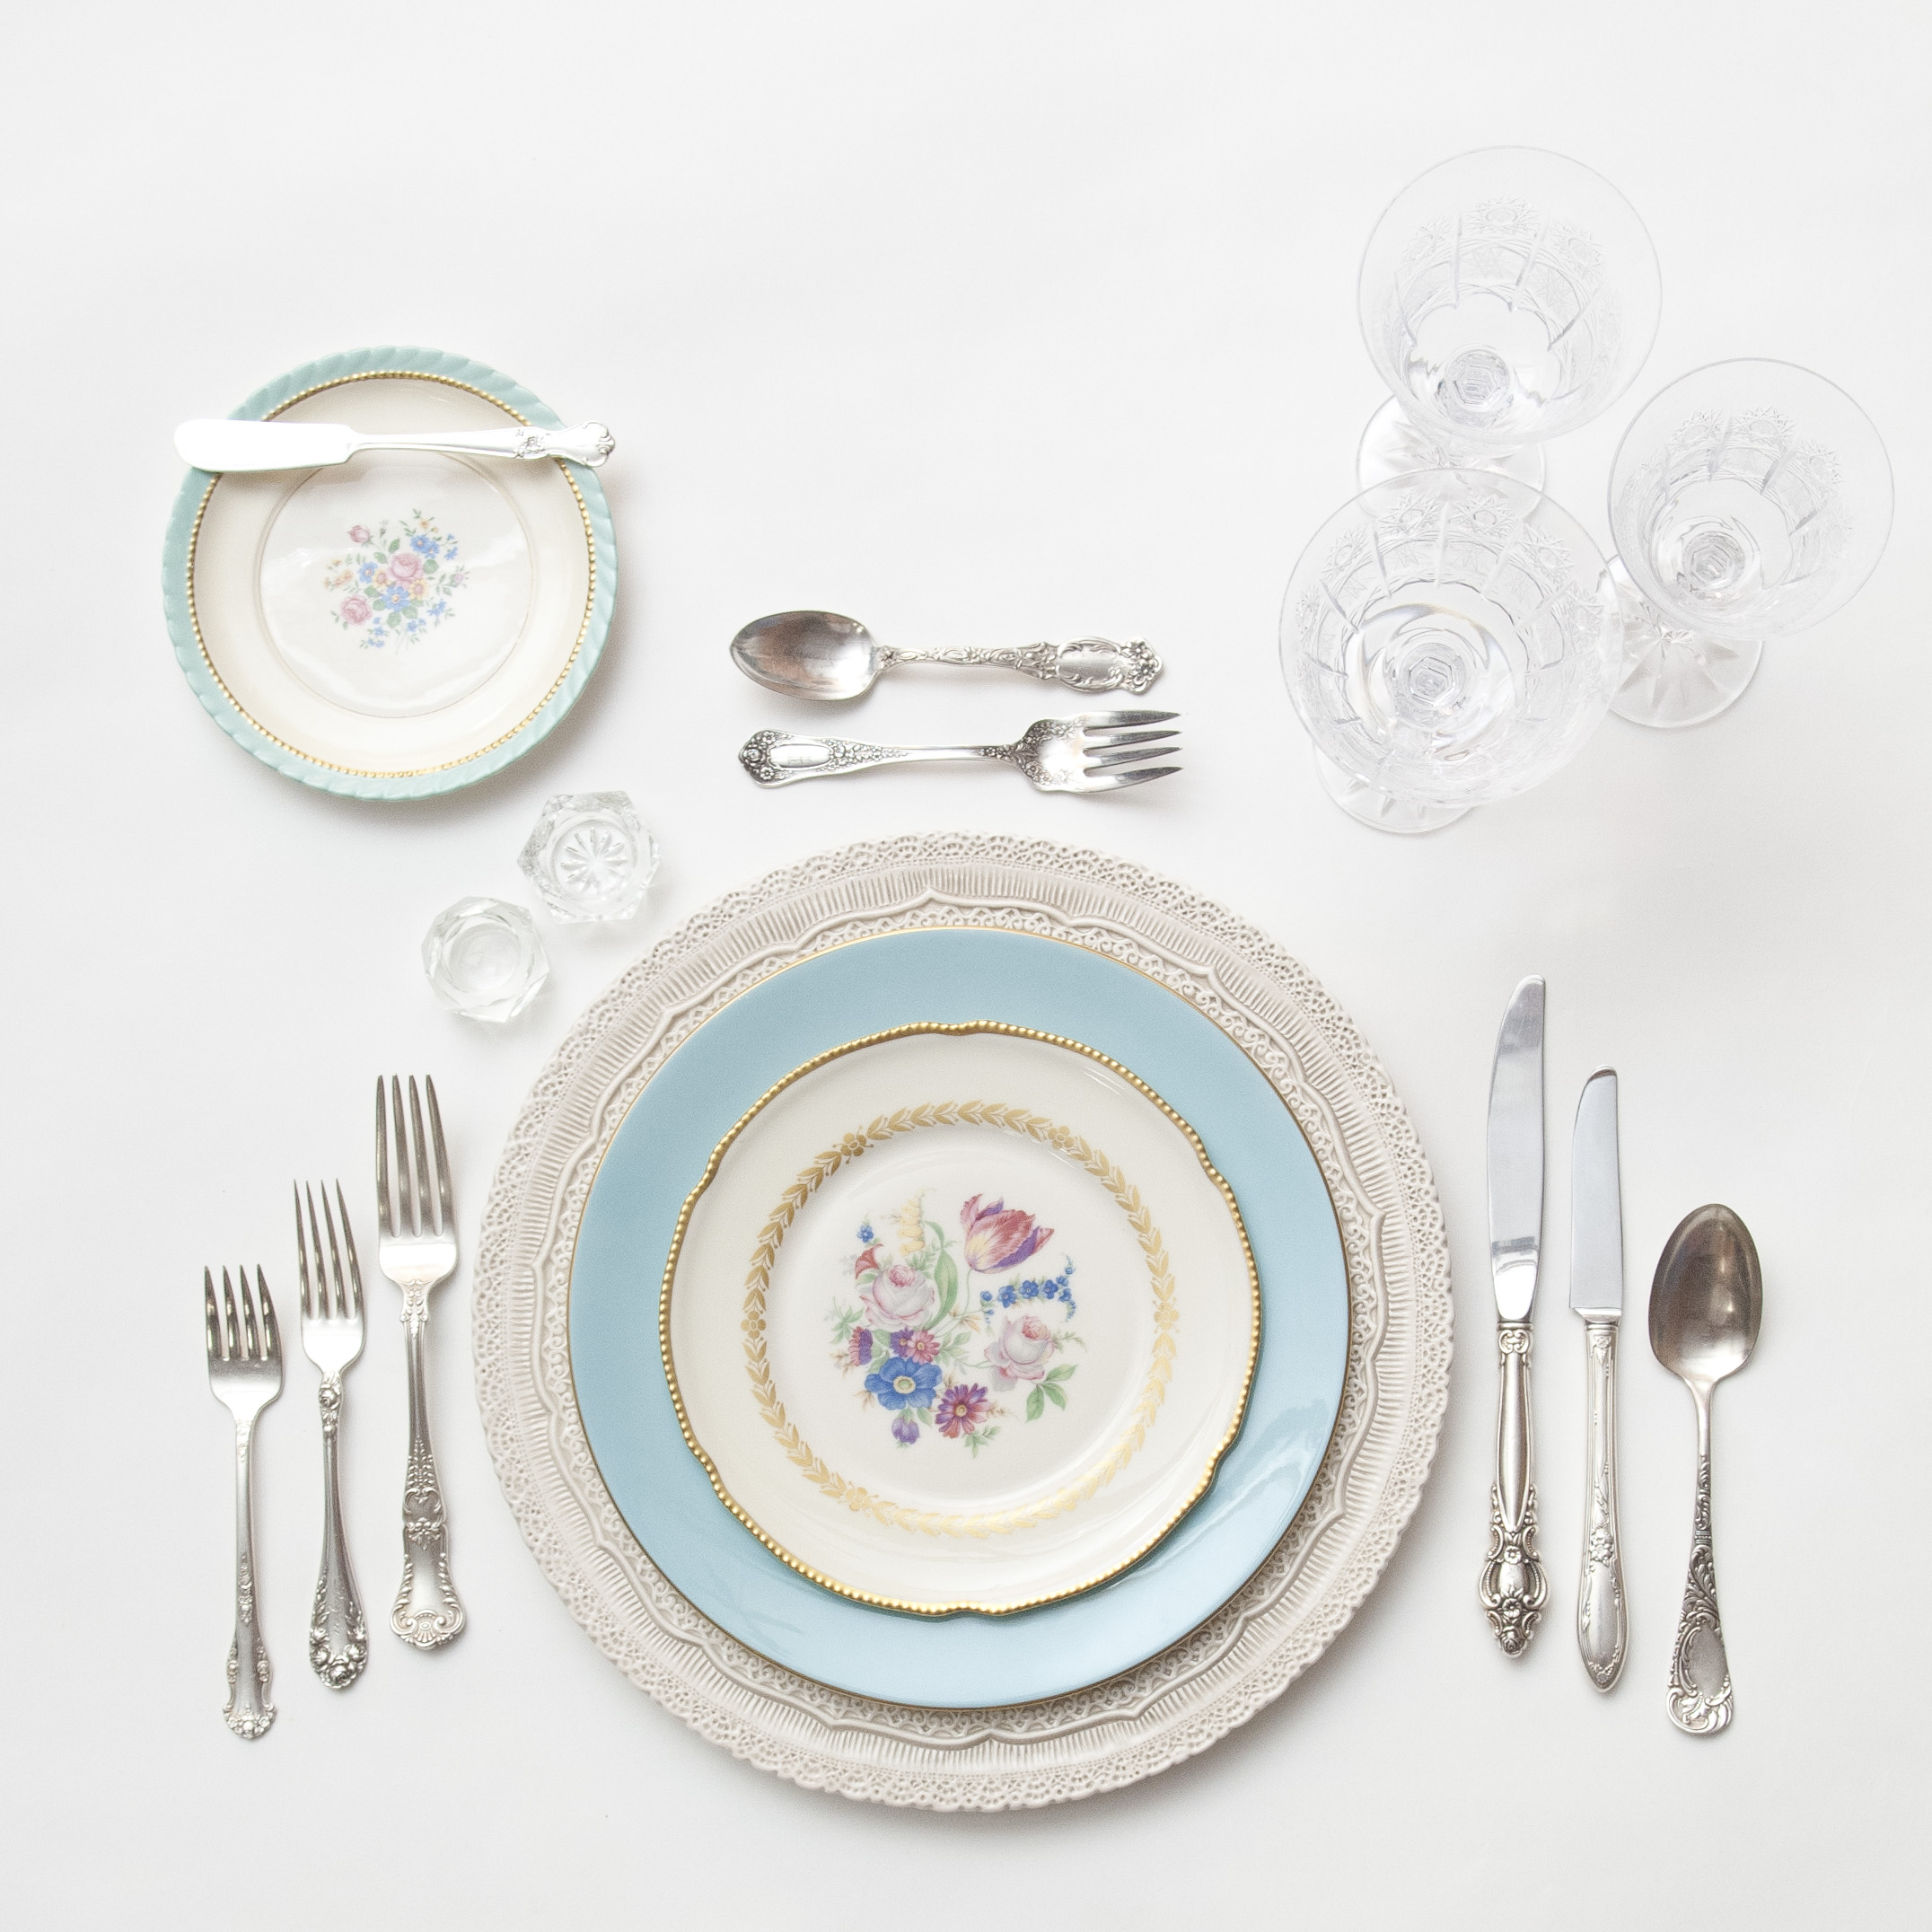 RENT: Lace Chargers in White + Blue/White Botanicals Vintage China + Antique Silver Flatware + Czech Crystal Stemware + Antique Crystal Salt Cellars